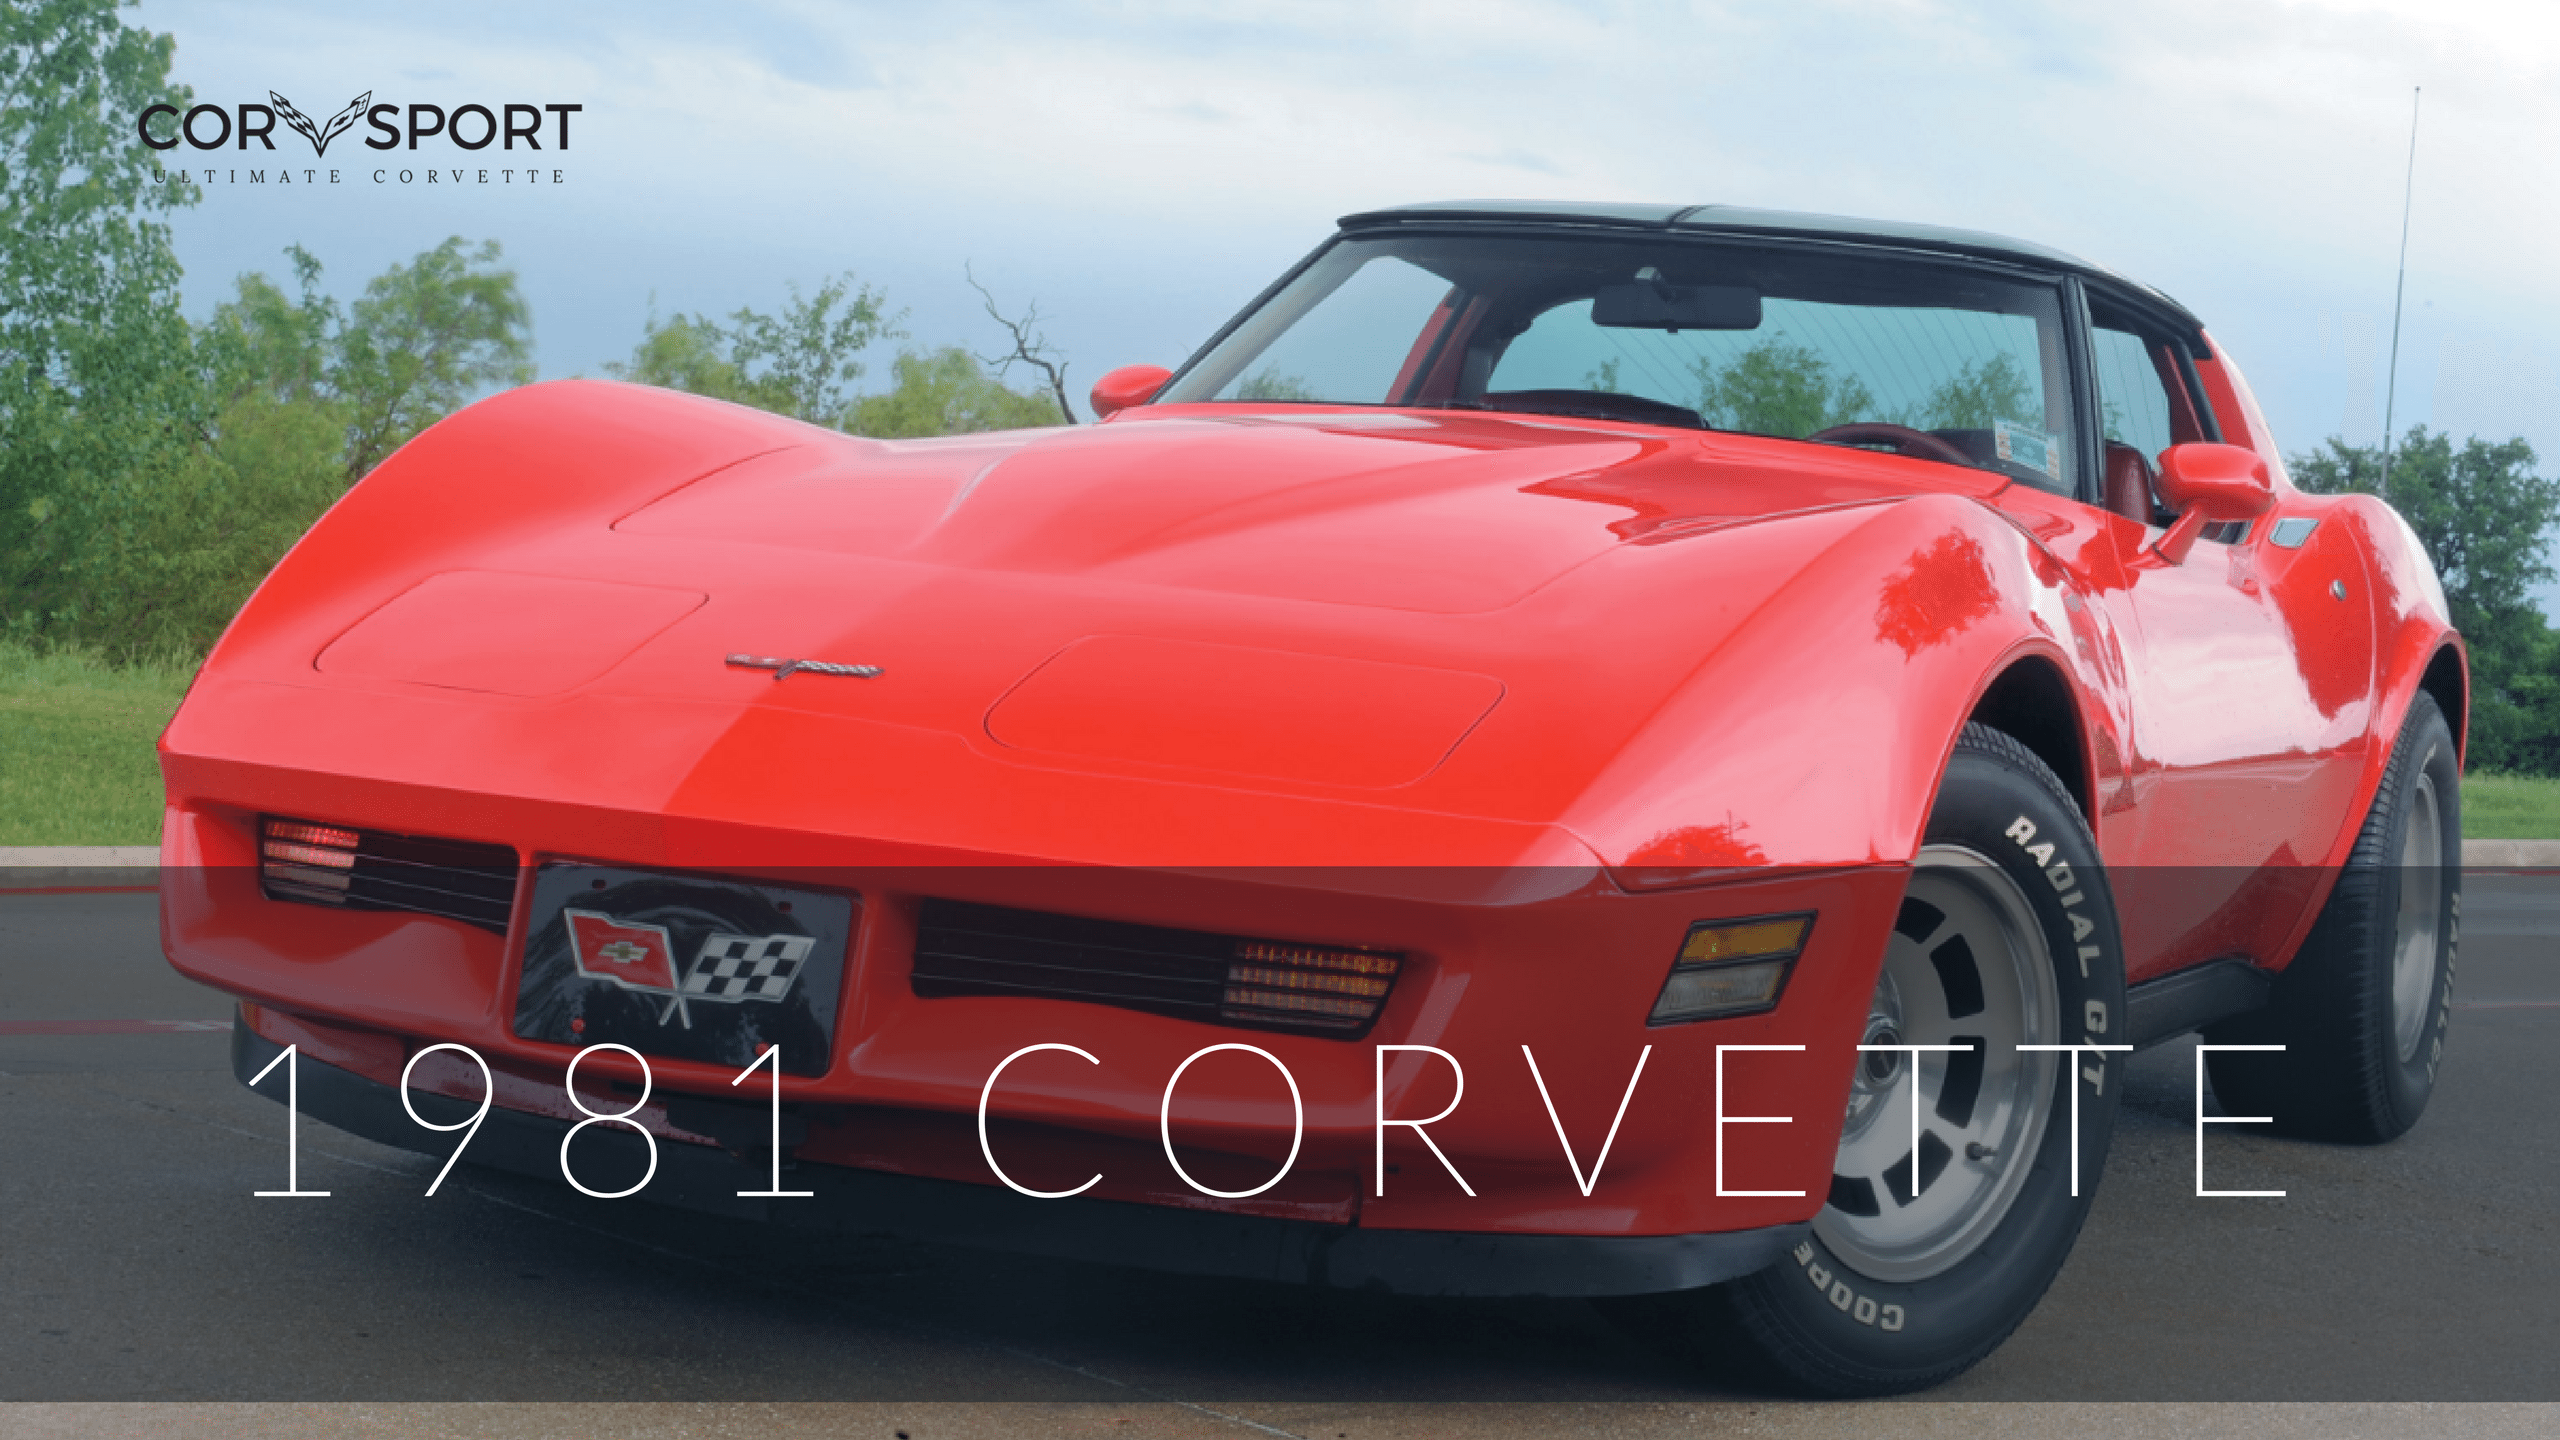 1981 C3 Corvette Ultimate Guide Overview Specs Vin Info Installing Electric Fan On A Performance More